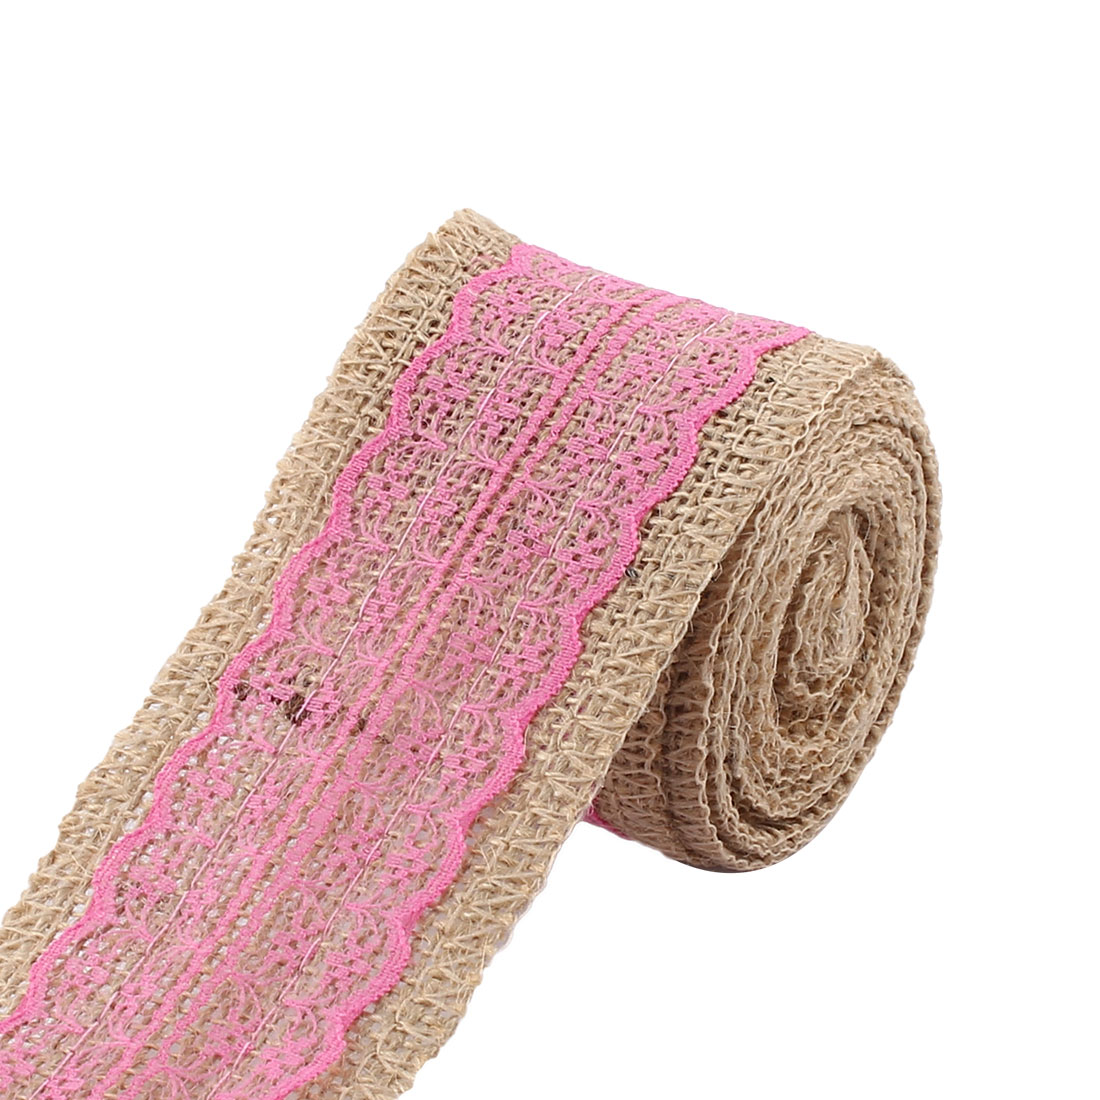 Room Decor Burlap DIY Gift Wrapping Packing Craft Ribbon Roll Fuchsia 3.3 Yards - image 4 of 4